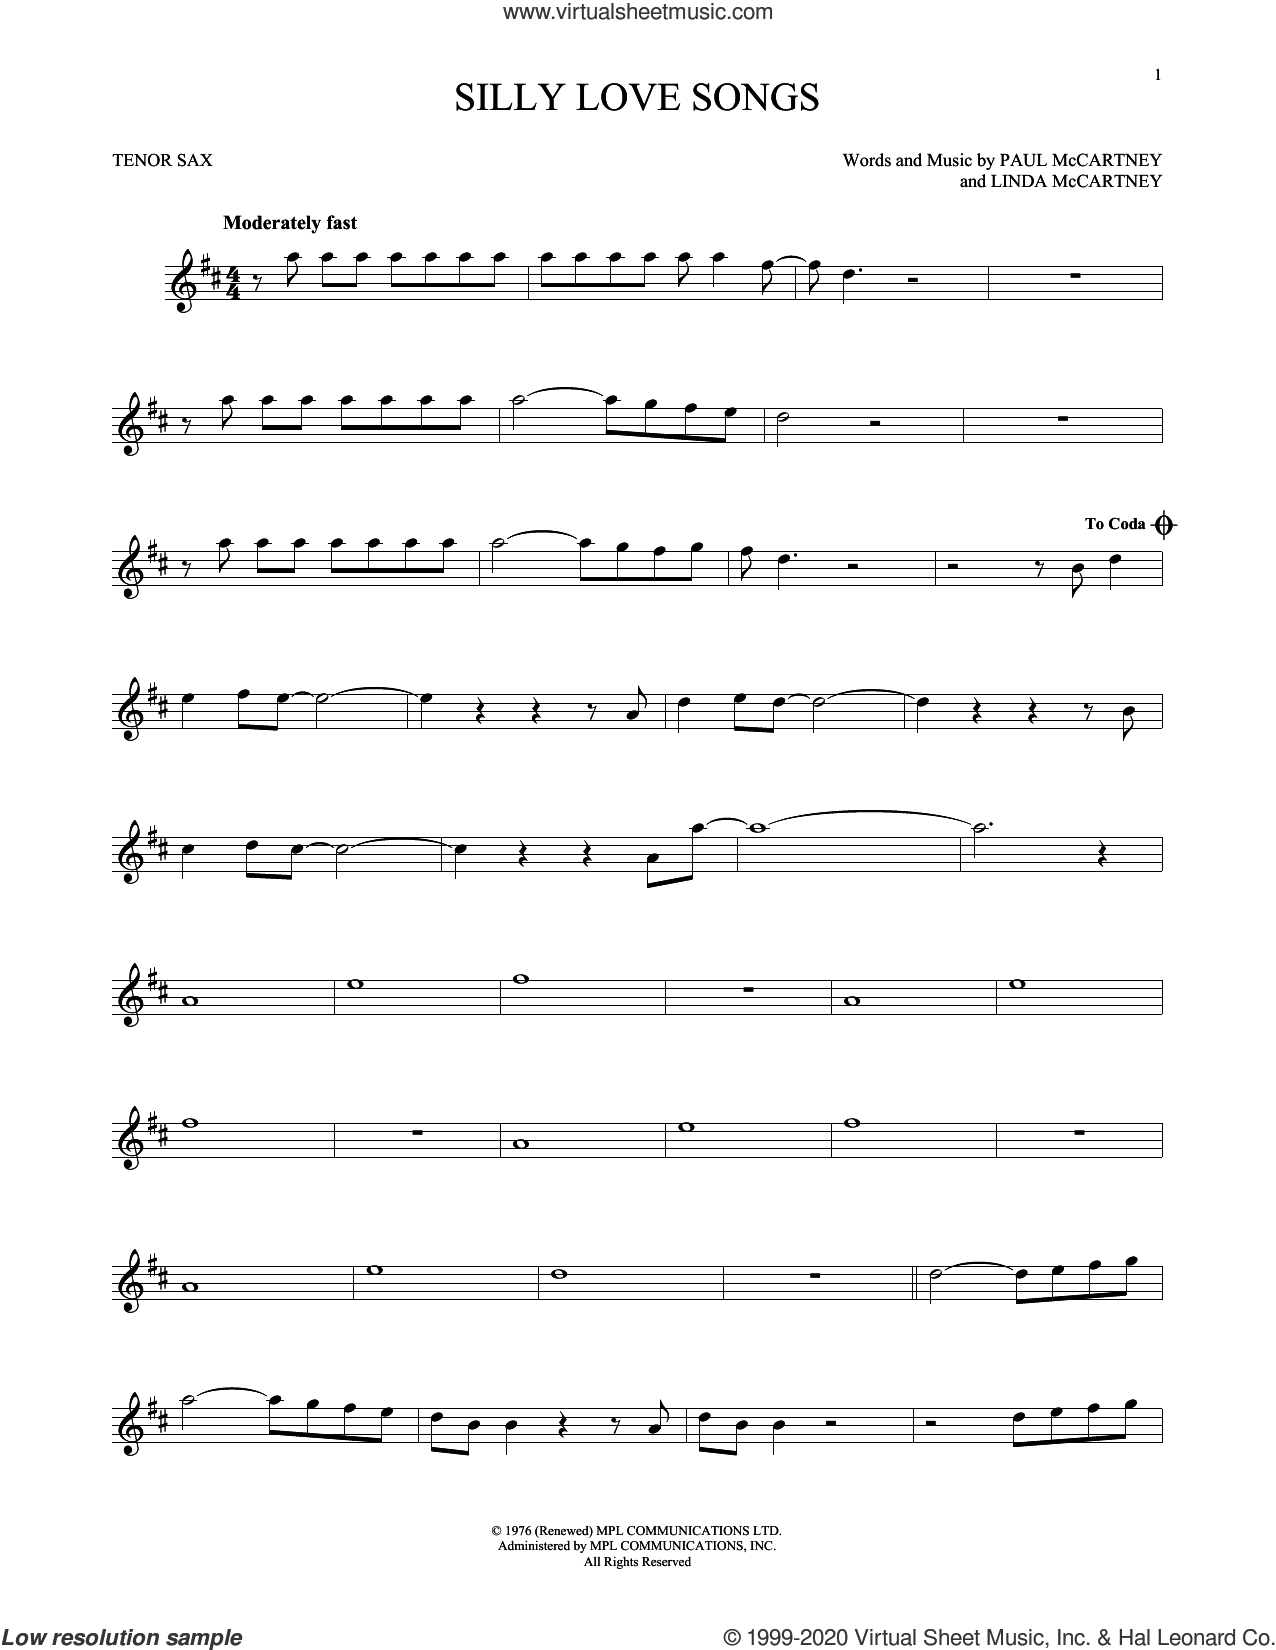 Silly Love Songs sheet music for tenor saxophone solo by Wings, Linda McCartney and Paul McCartney, intermediate skill level